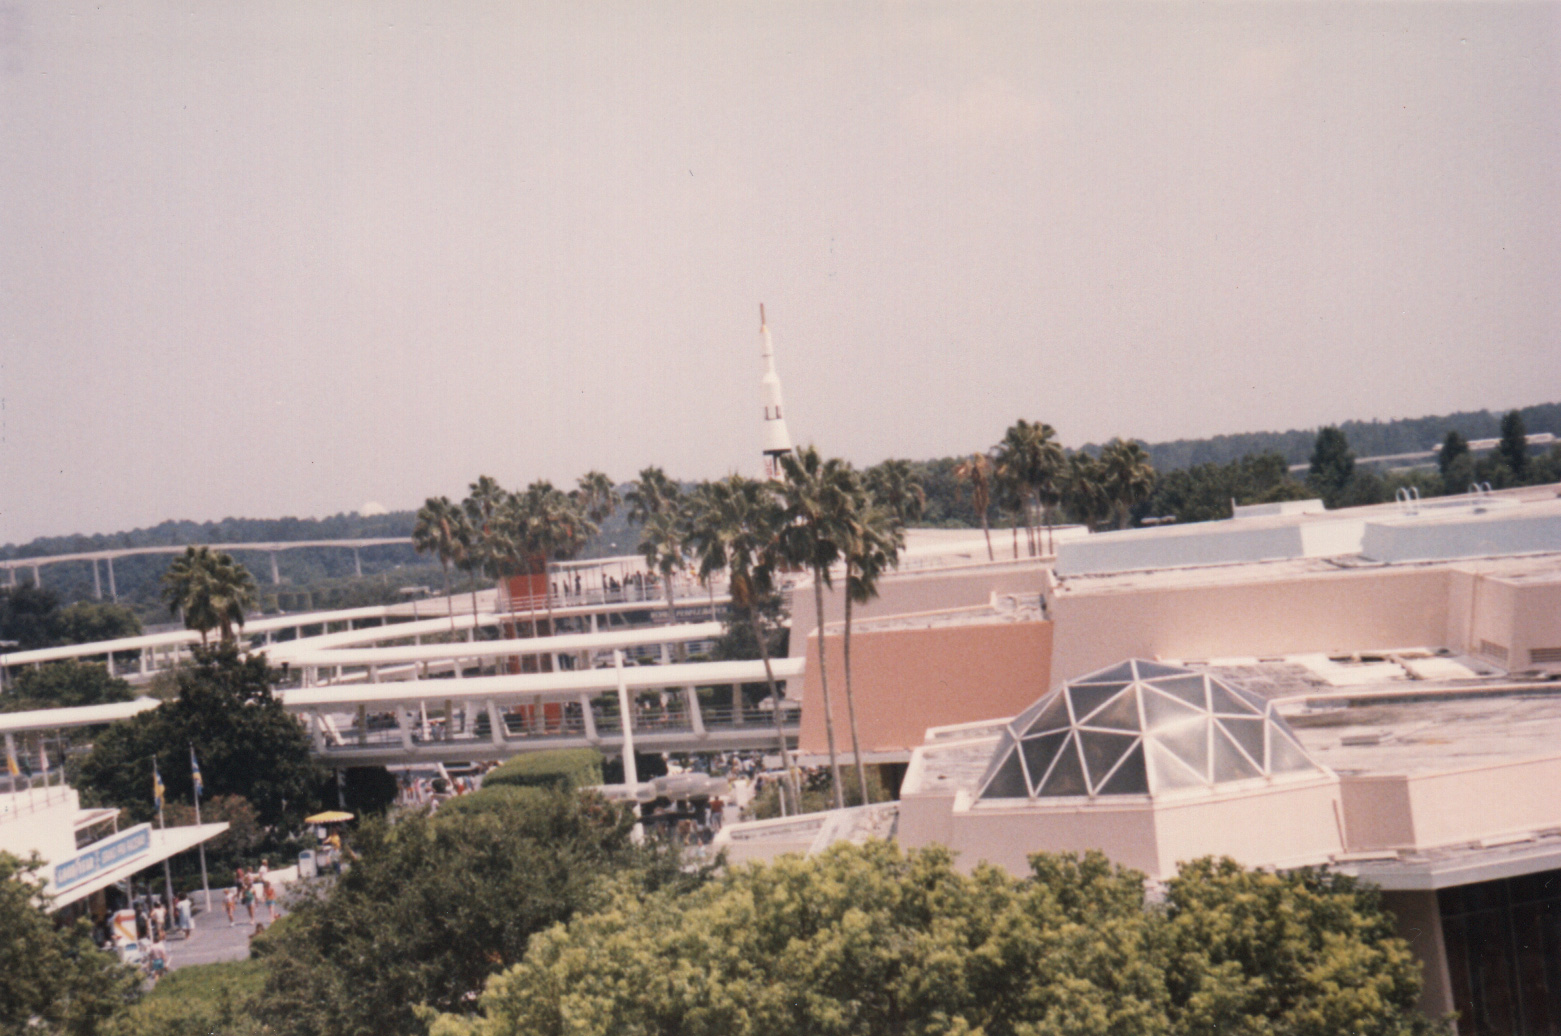 Magic Kingdom Tomorrowland rooftops